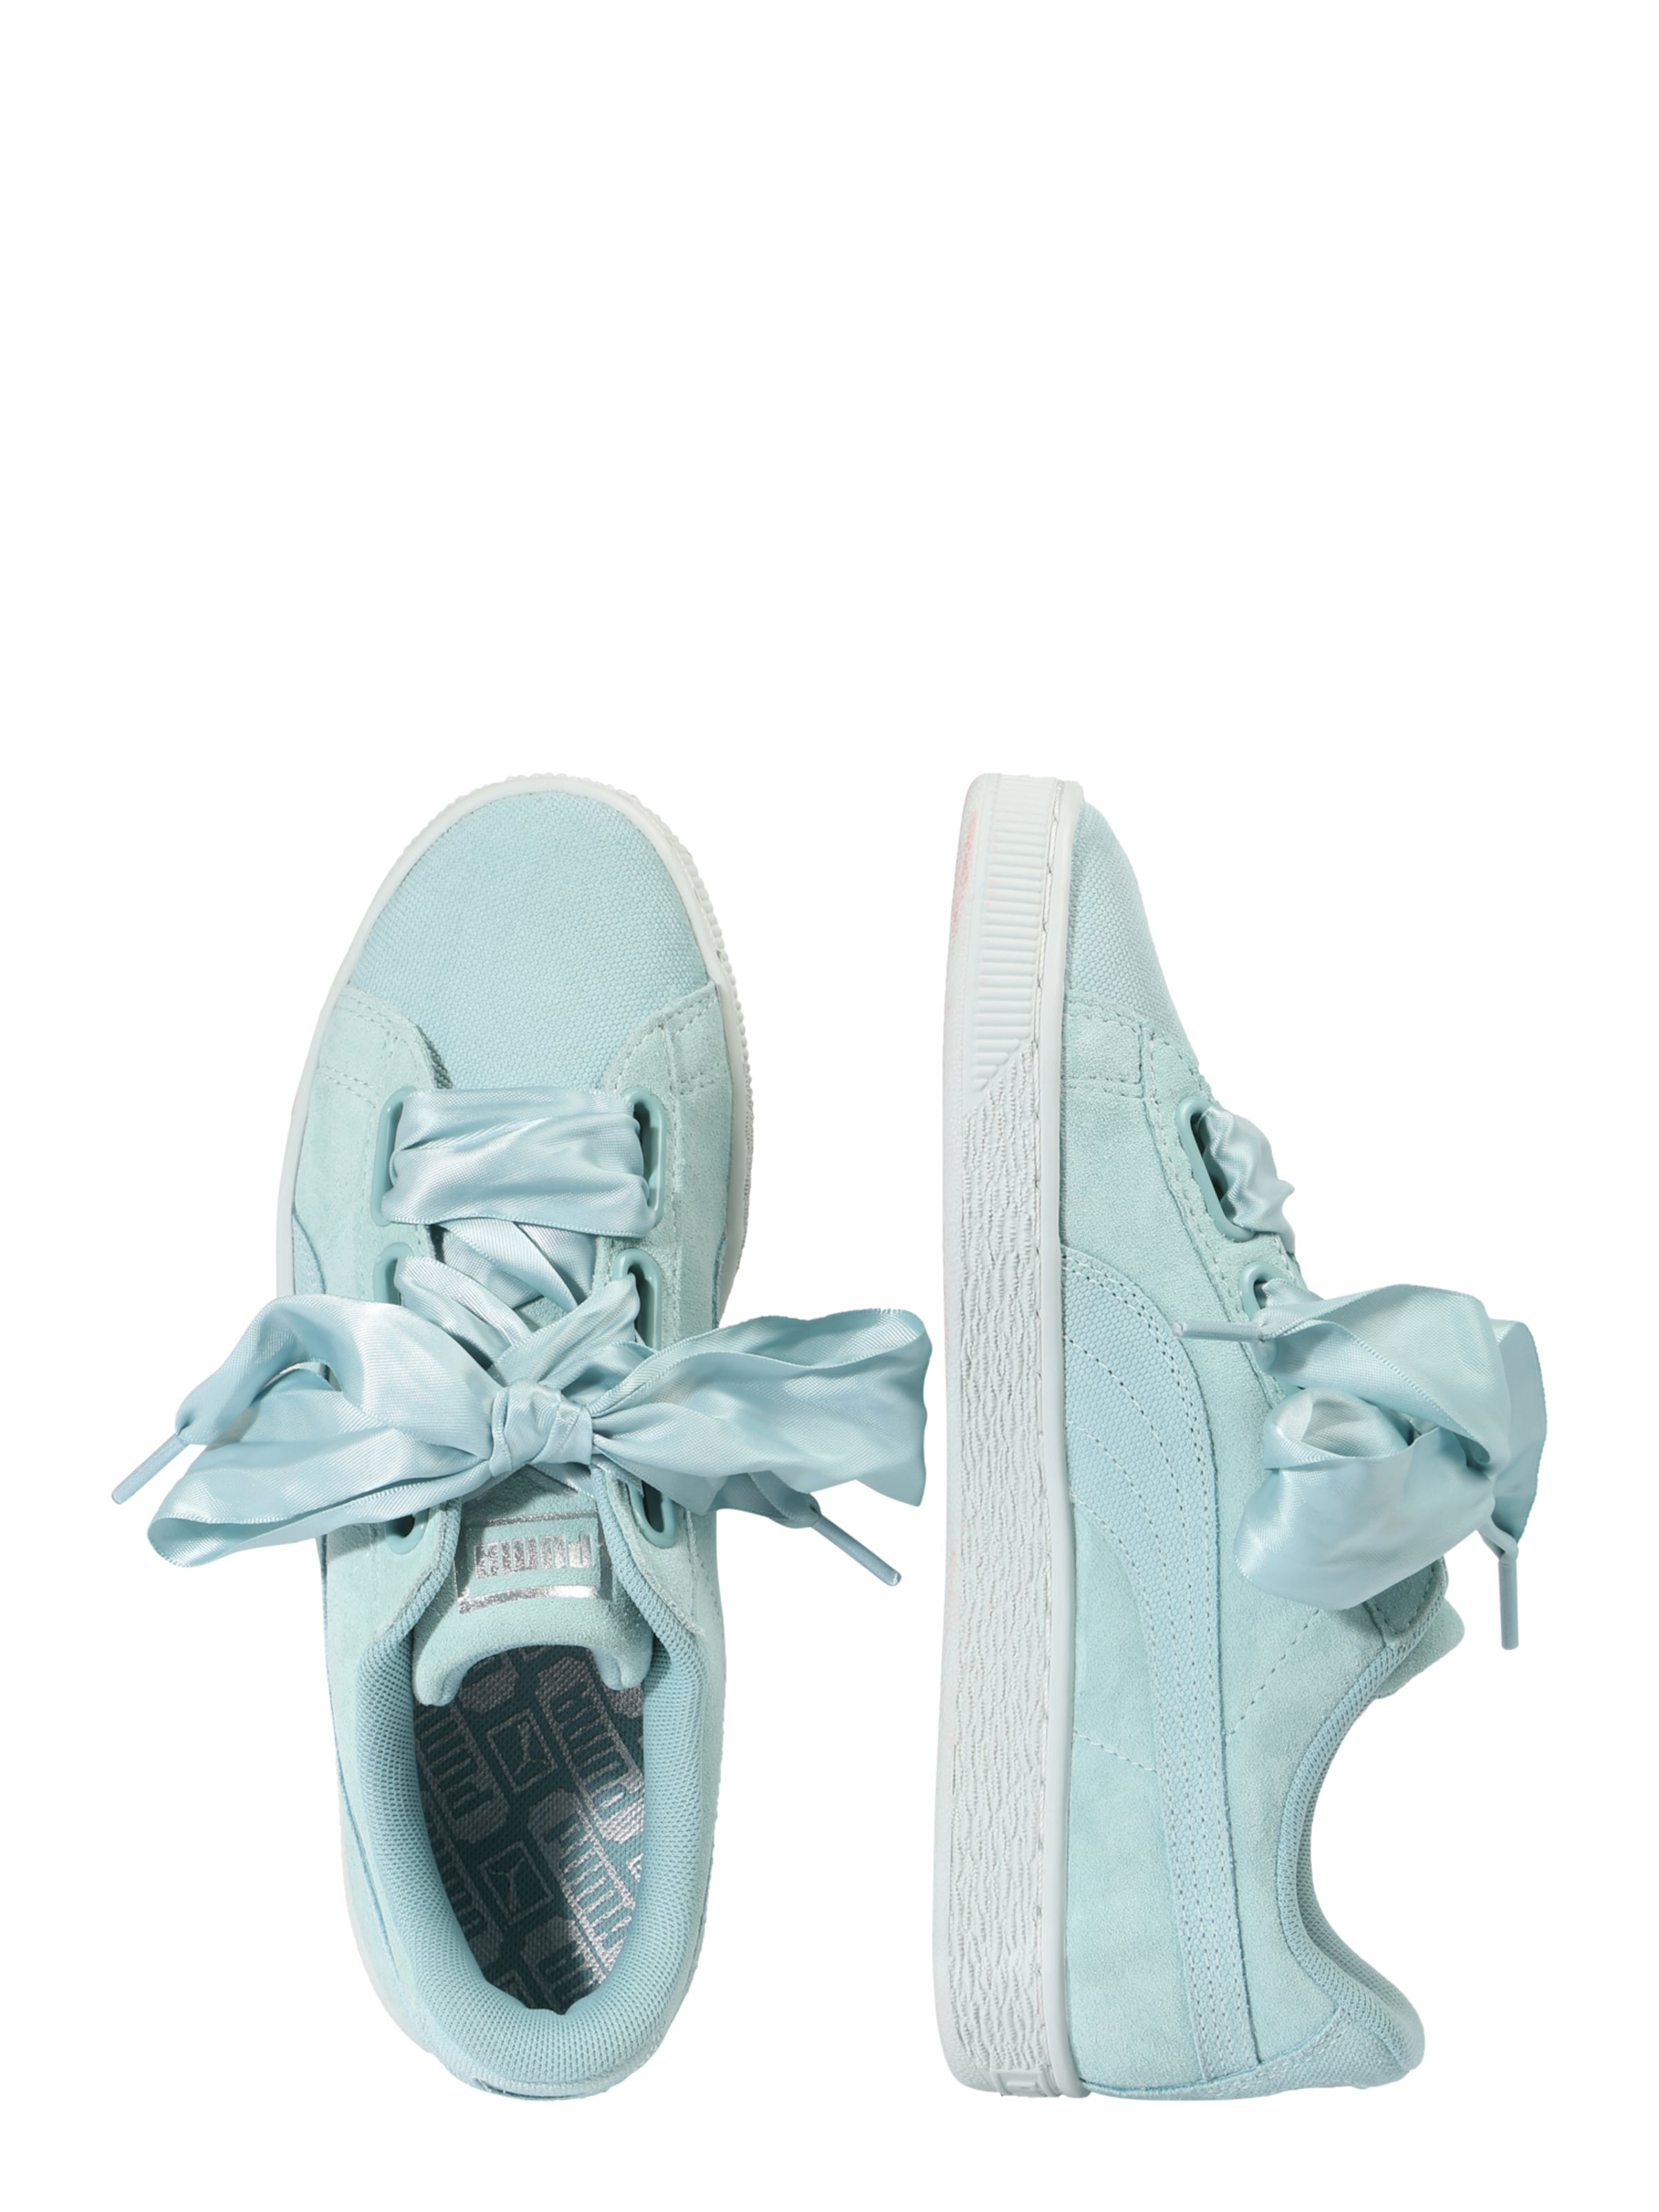 Heart Bleu En Pebble' Puma 'suede Basses Clair Baskets PkXZTwOuli